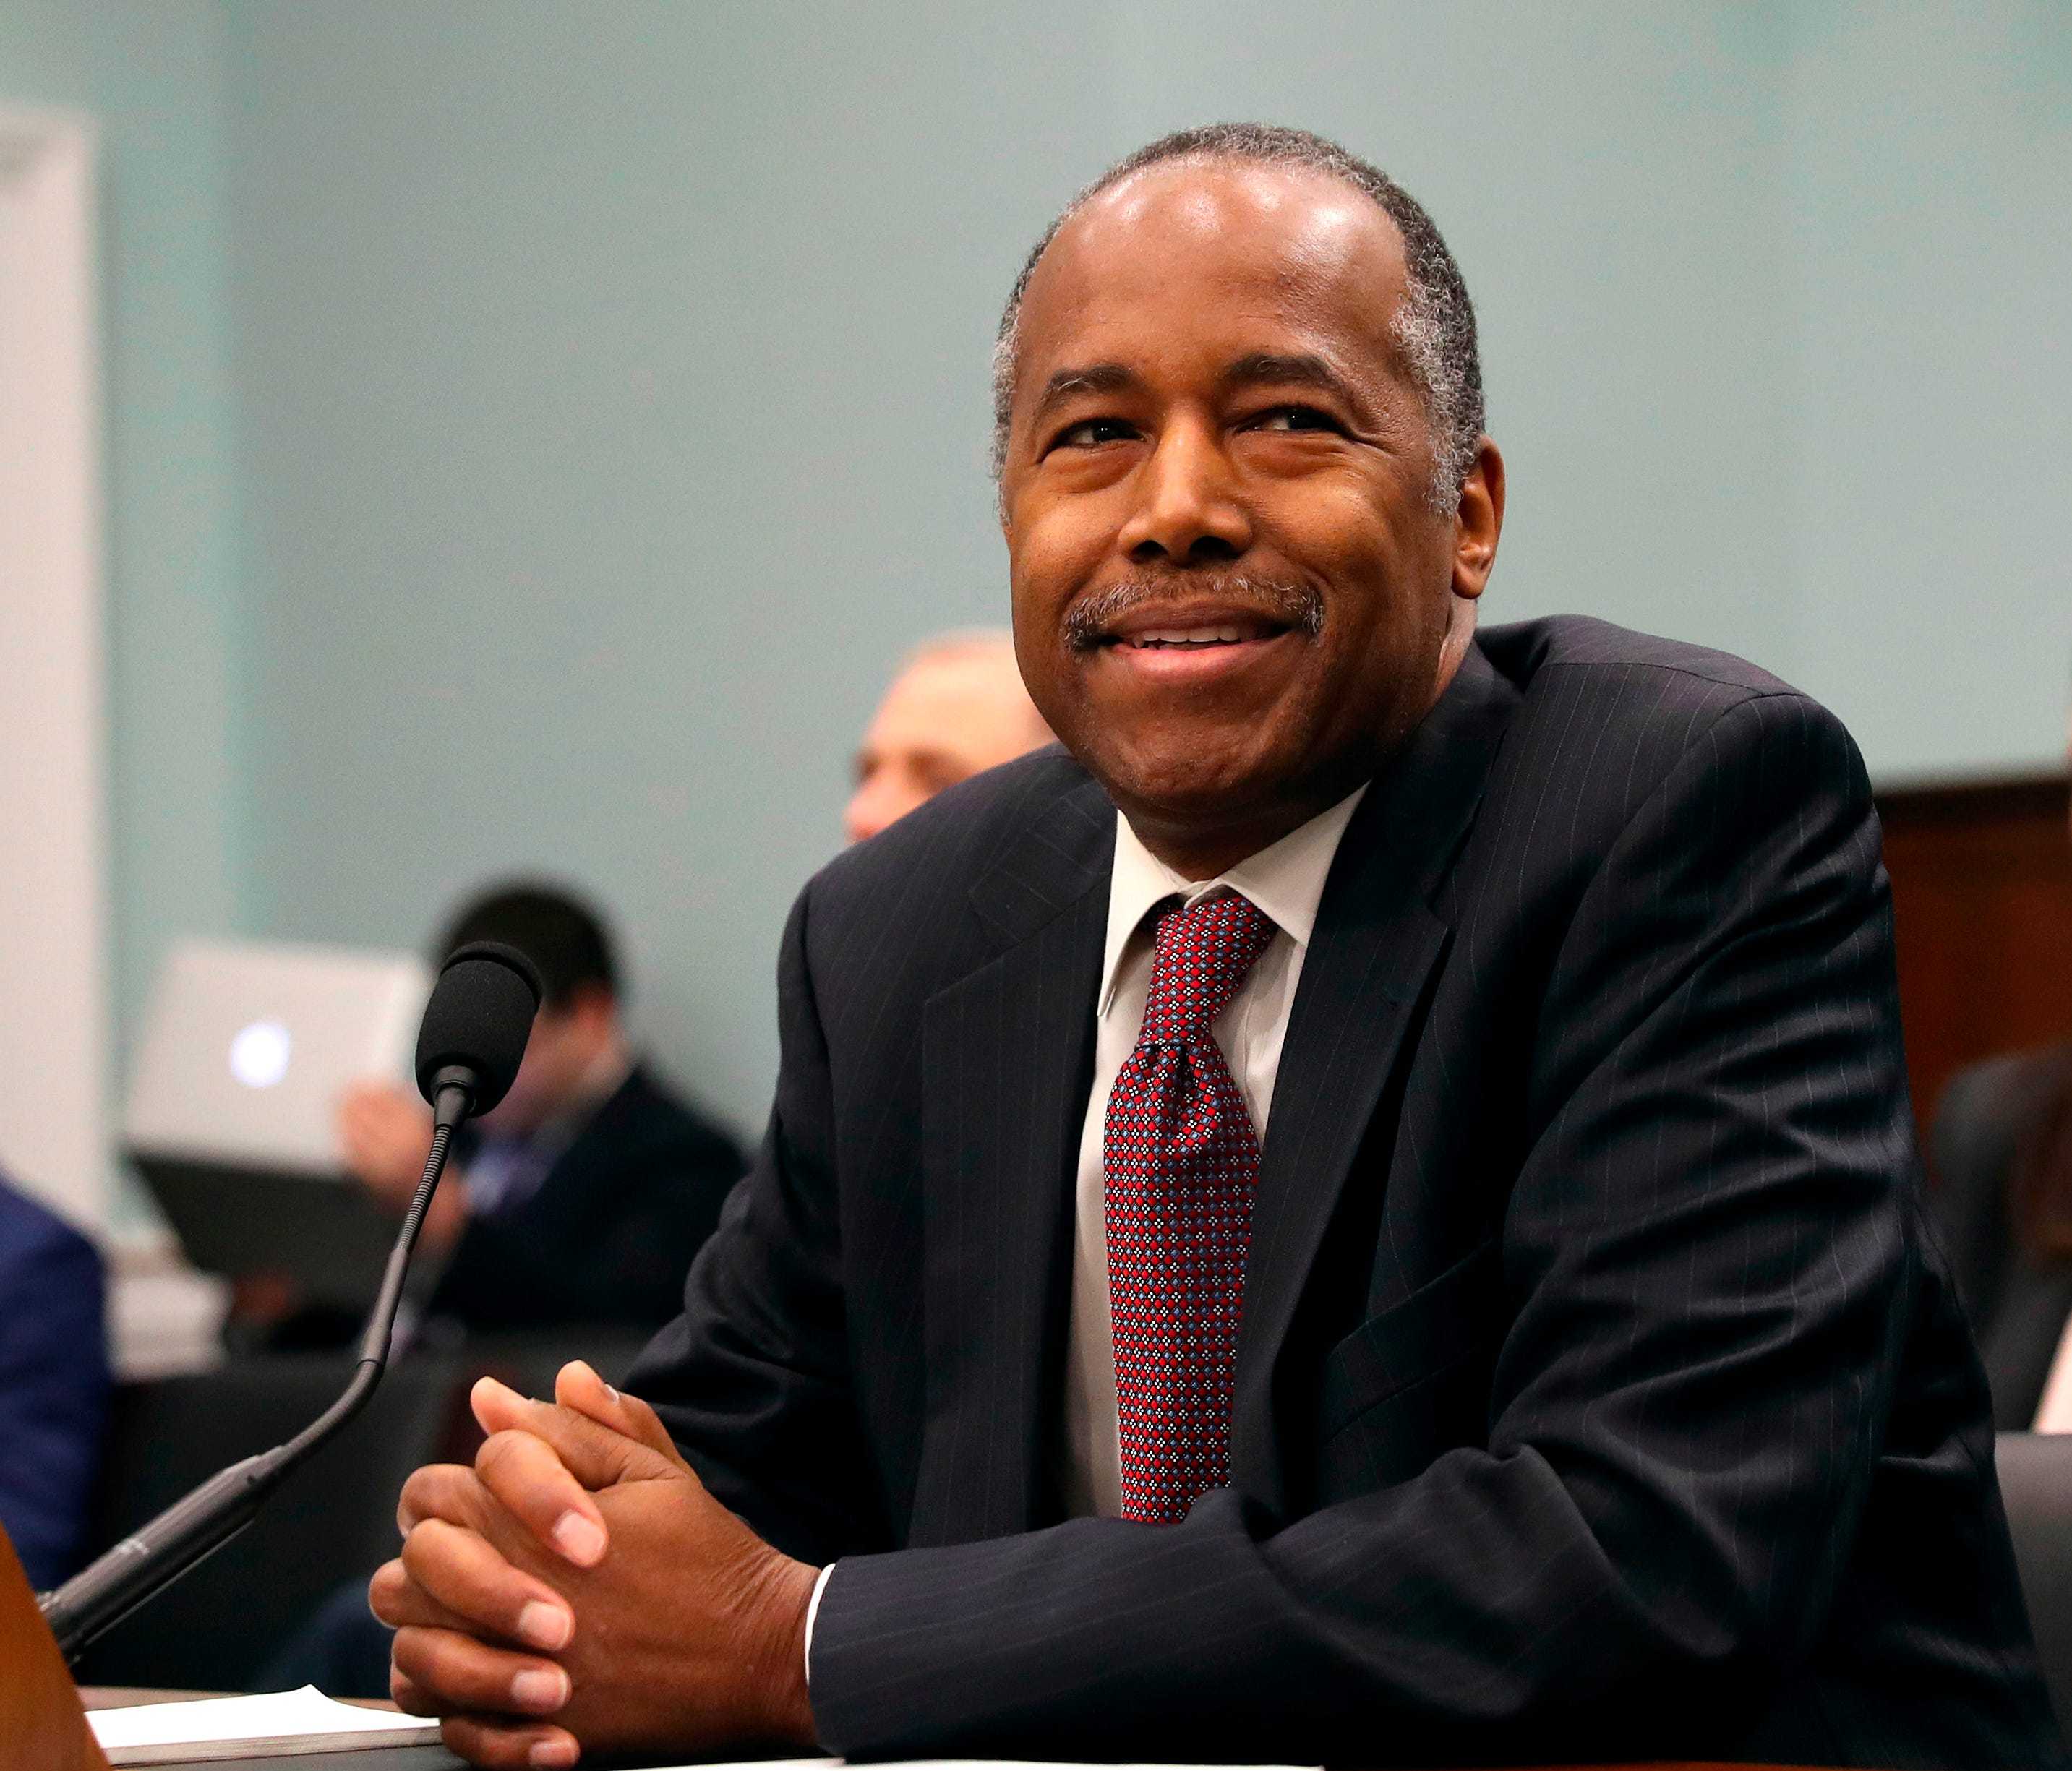 Housing and Urban Development Secretary Ben Carson takes his seat before testifying before a House Committee on Appropriation subcommittee hearing on Capitol Hill in Washington, March 20, 2018.